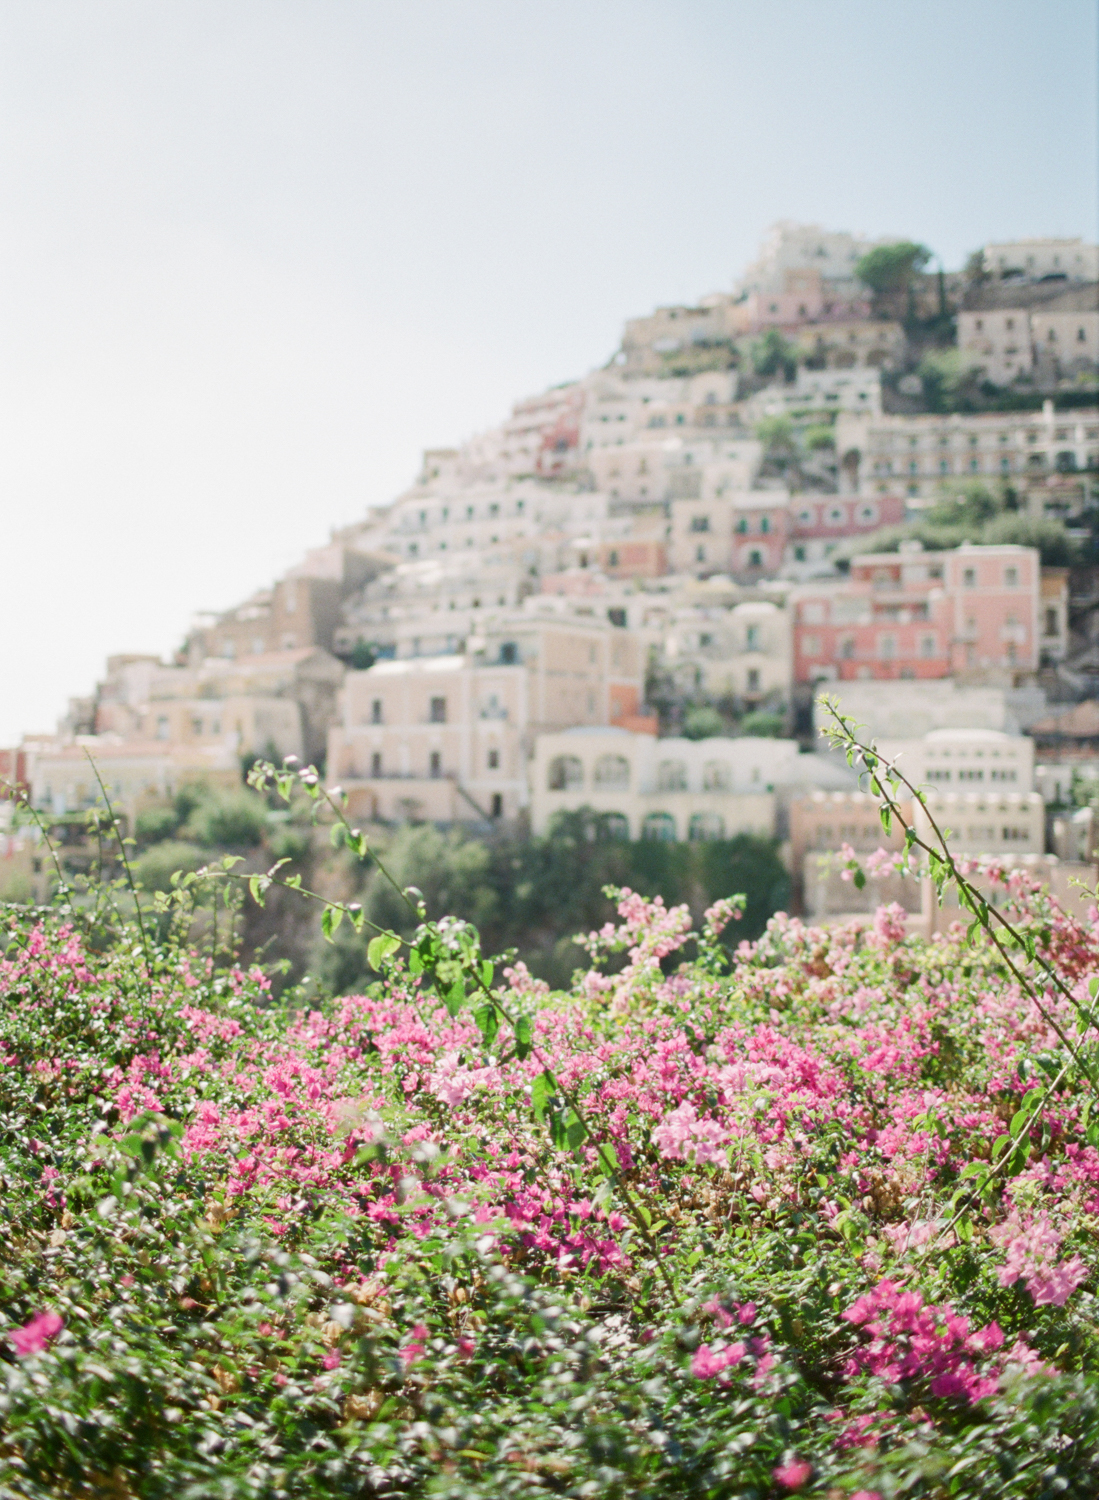 positano wedding anniversary amalfi coast wedding photographer positano film wedding photographer 02.JPG